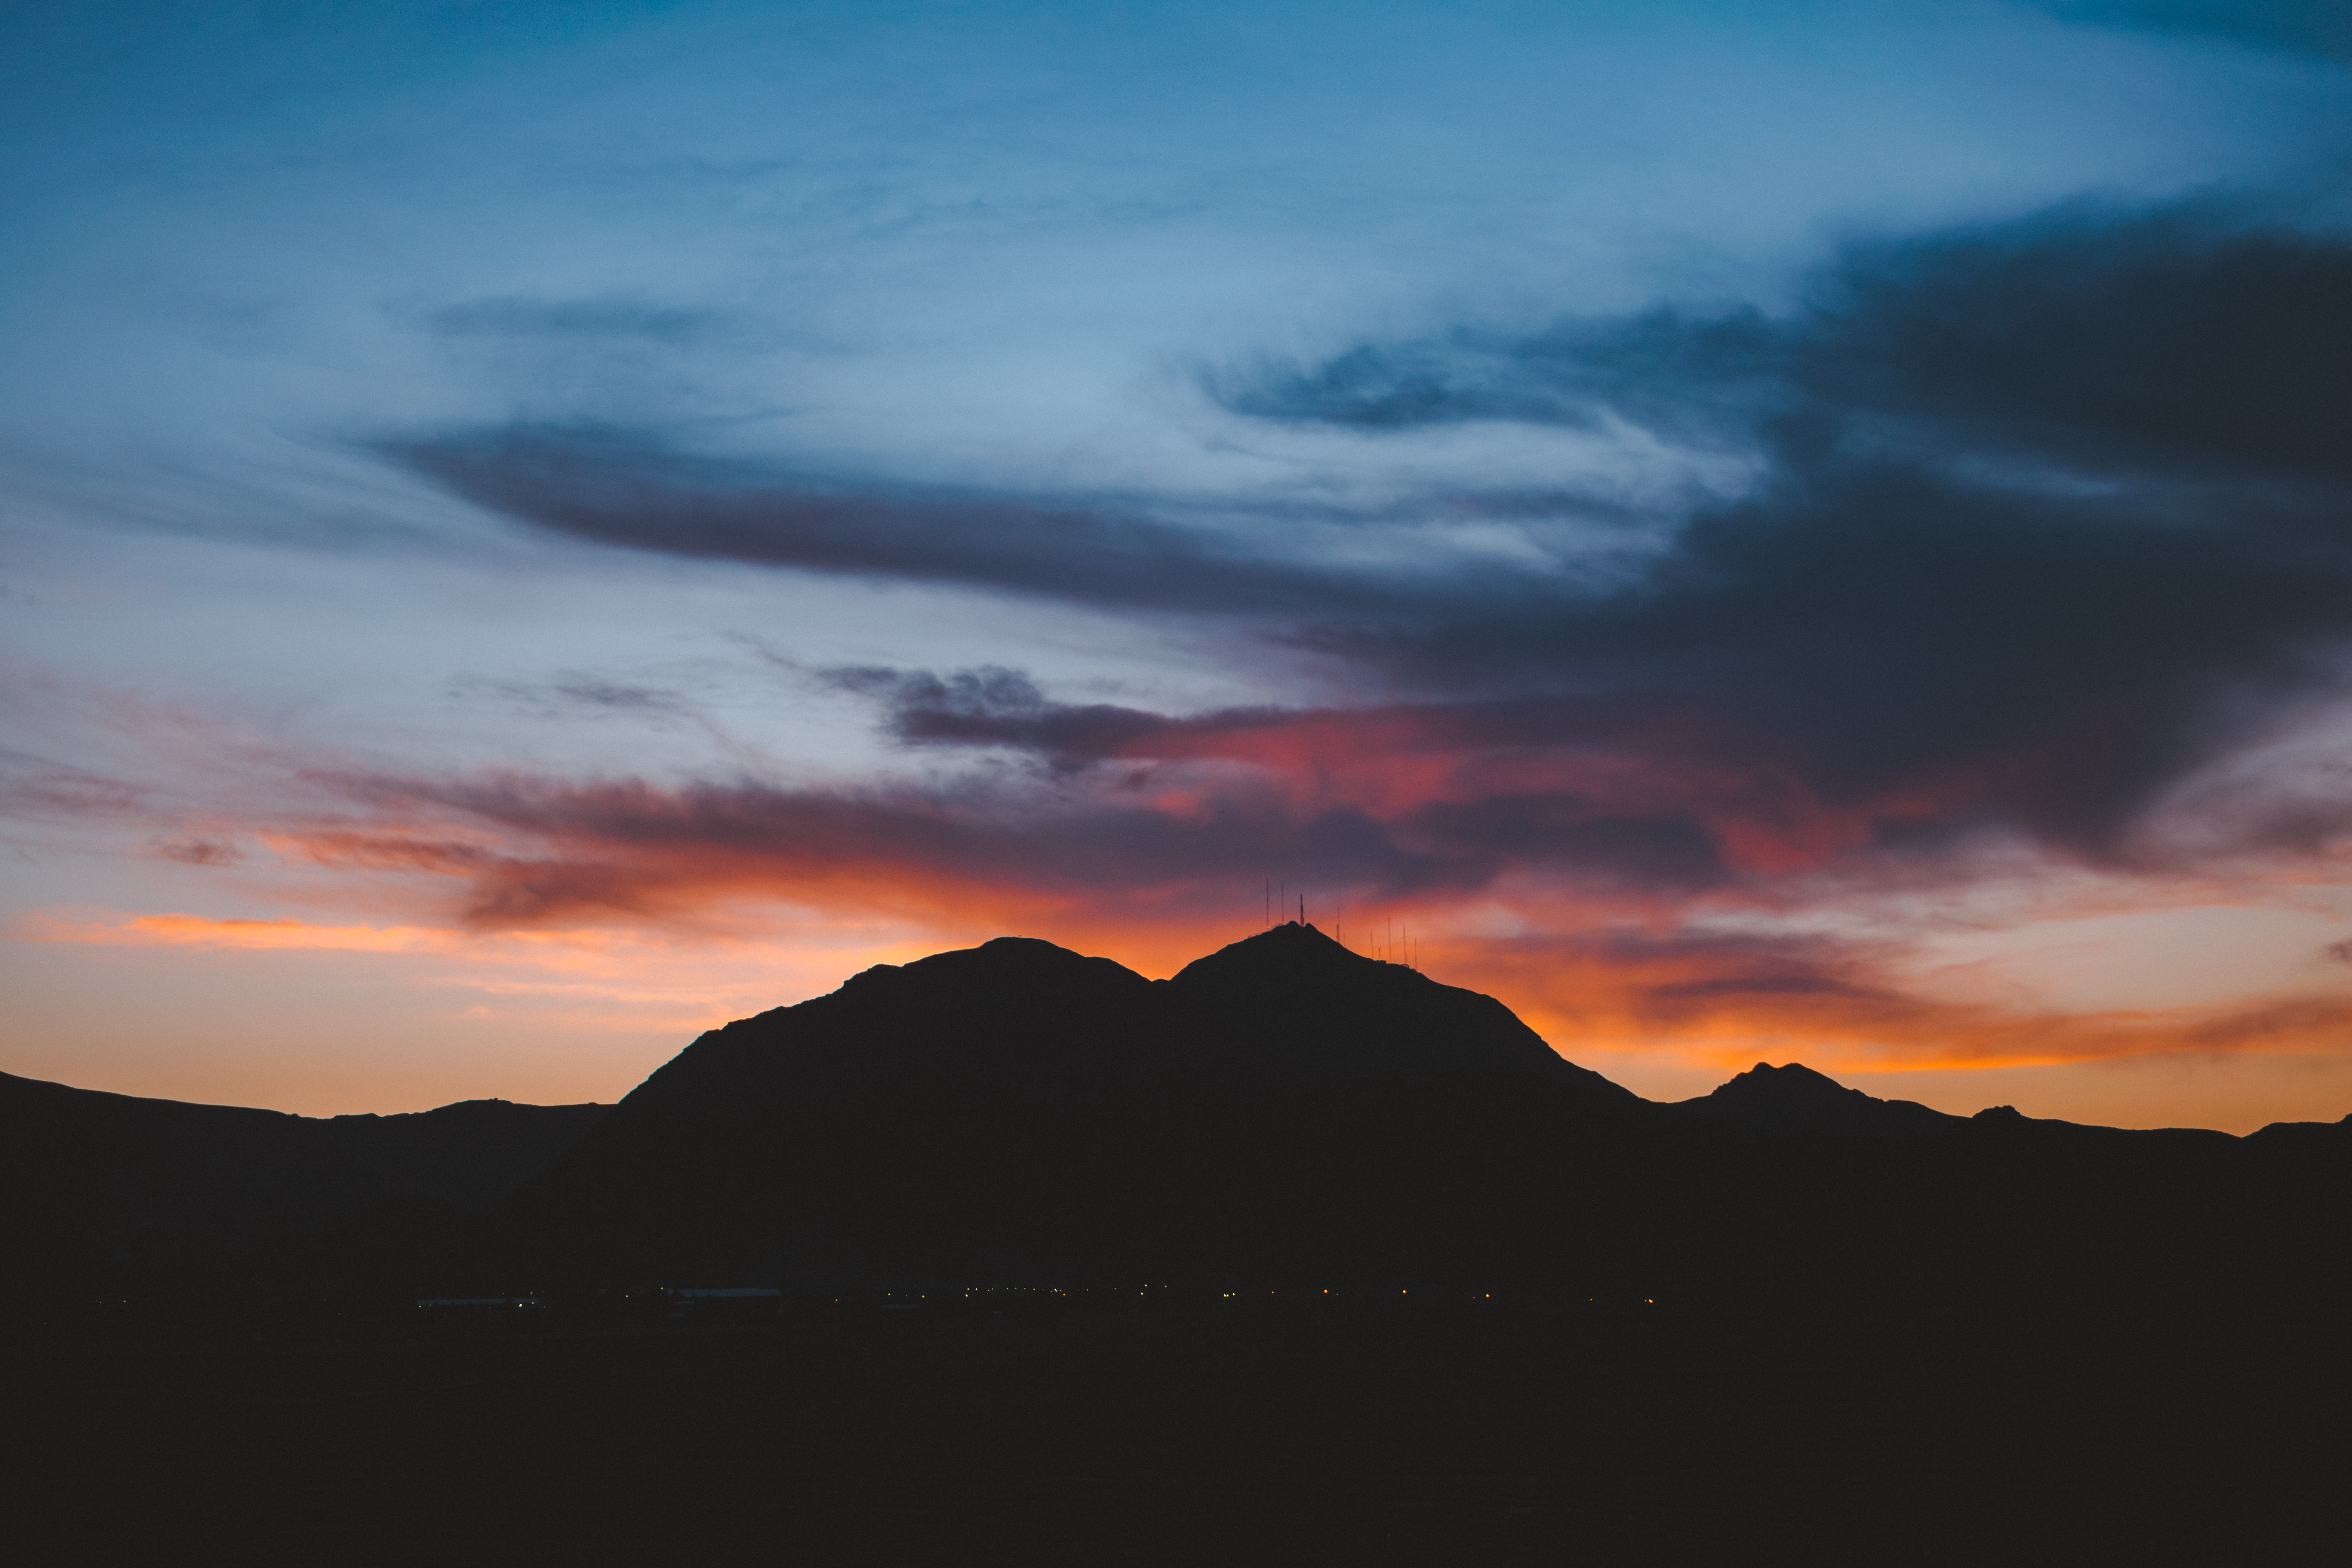 silhouette of mountain during dusk